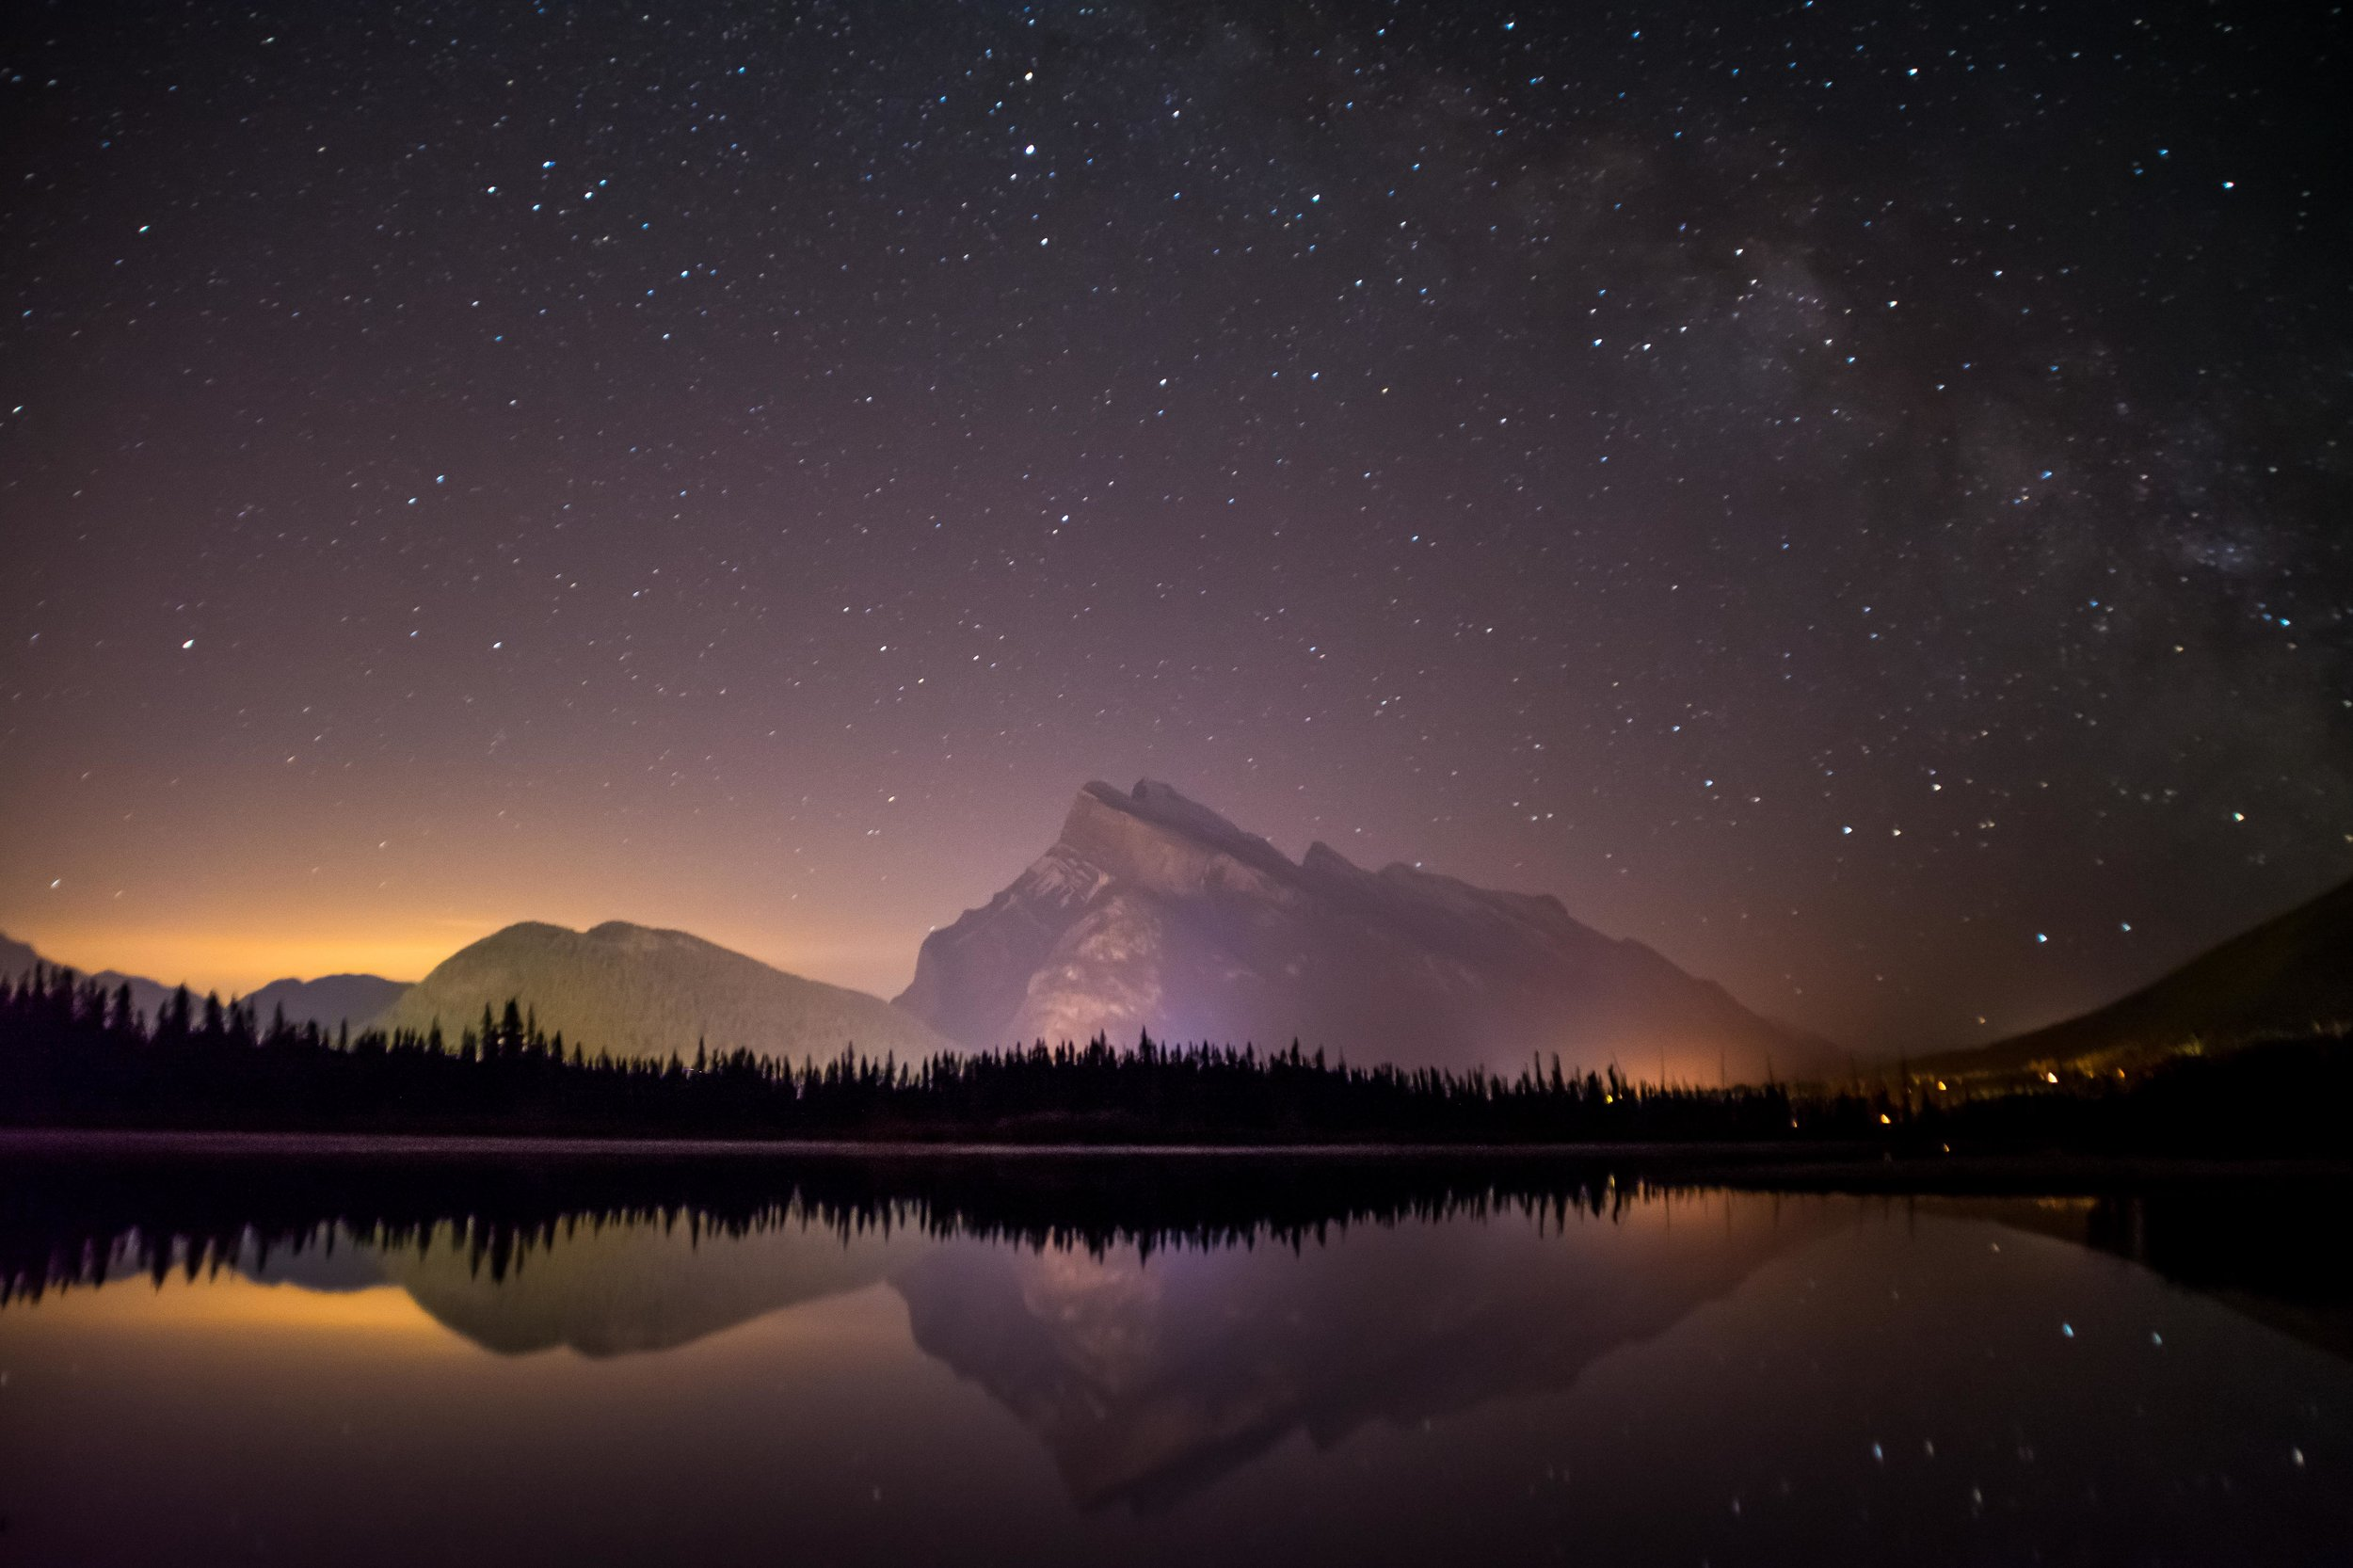 Vermilion Lakes Mount Rundle Tunnel Mountain Banff Alberta Voyage Collective Sam Hobley Photography